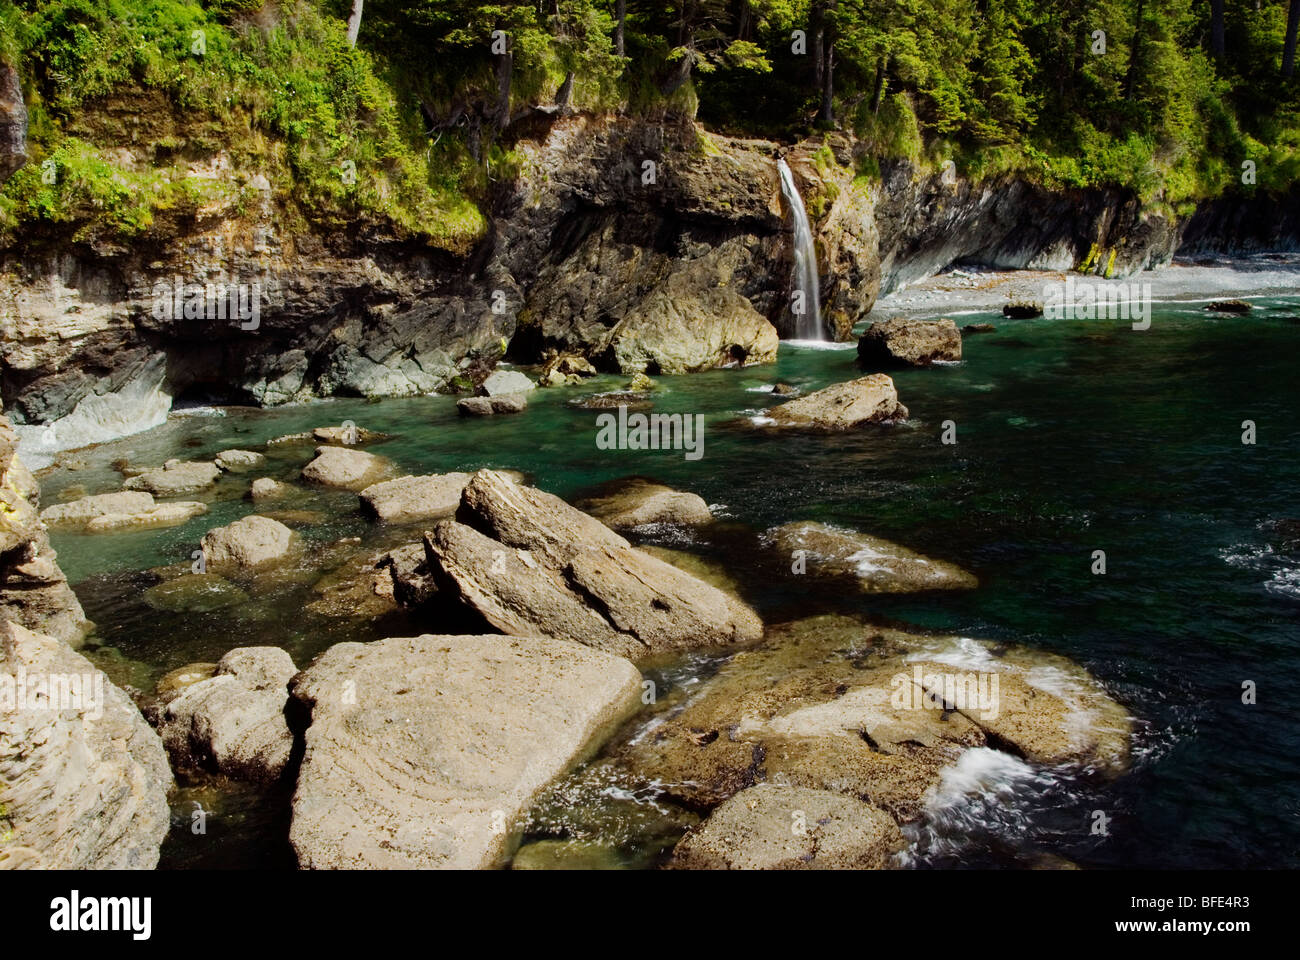 A waterfal, near Sombrio Beach on the Juan de Fuca Marine Trail, Vancouver Island, British Columbia, Canada - Stock Image